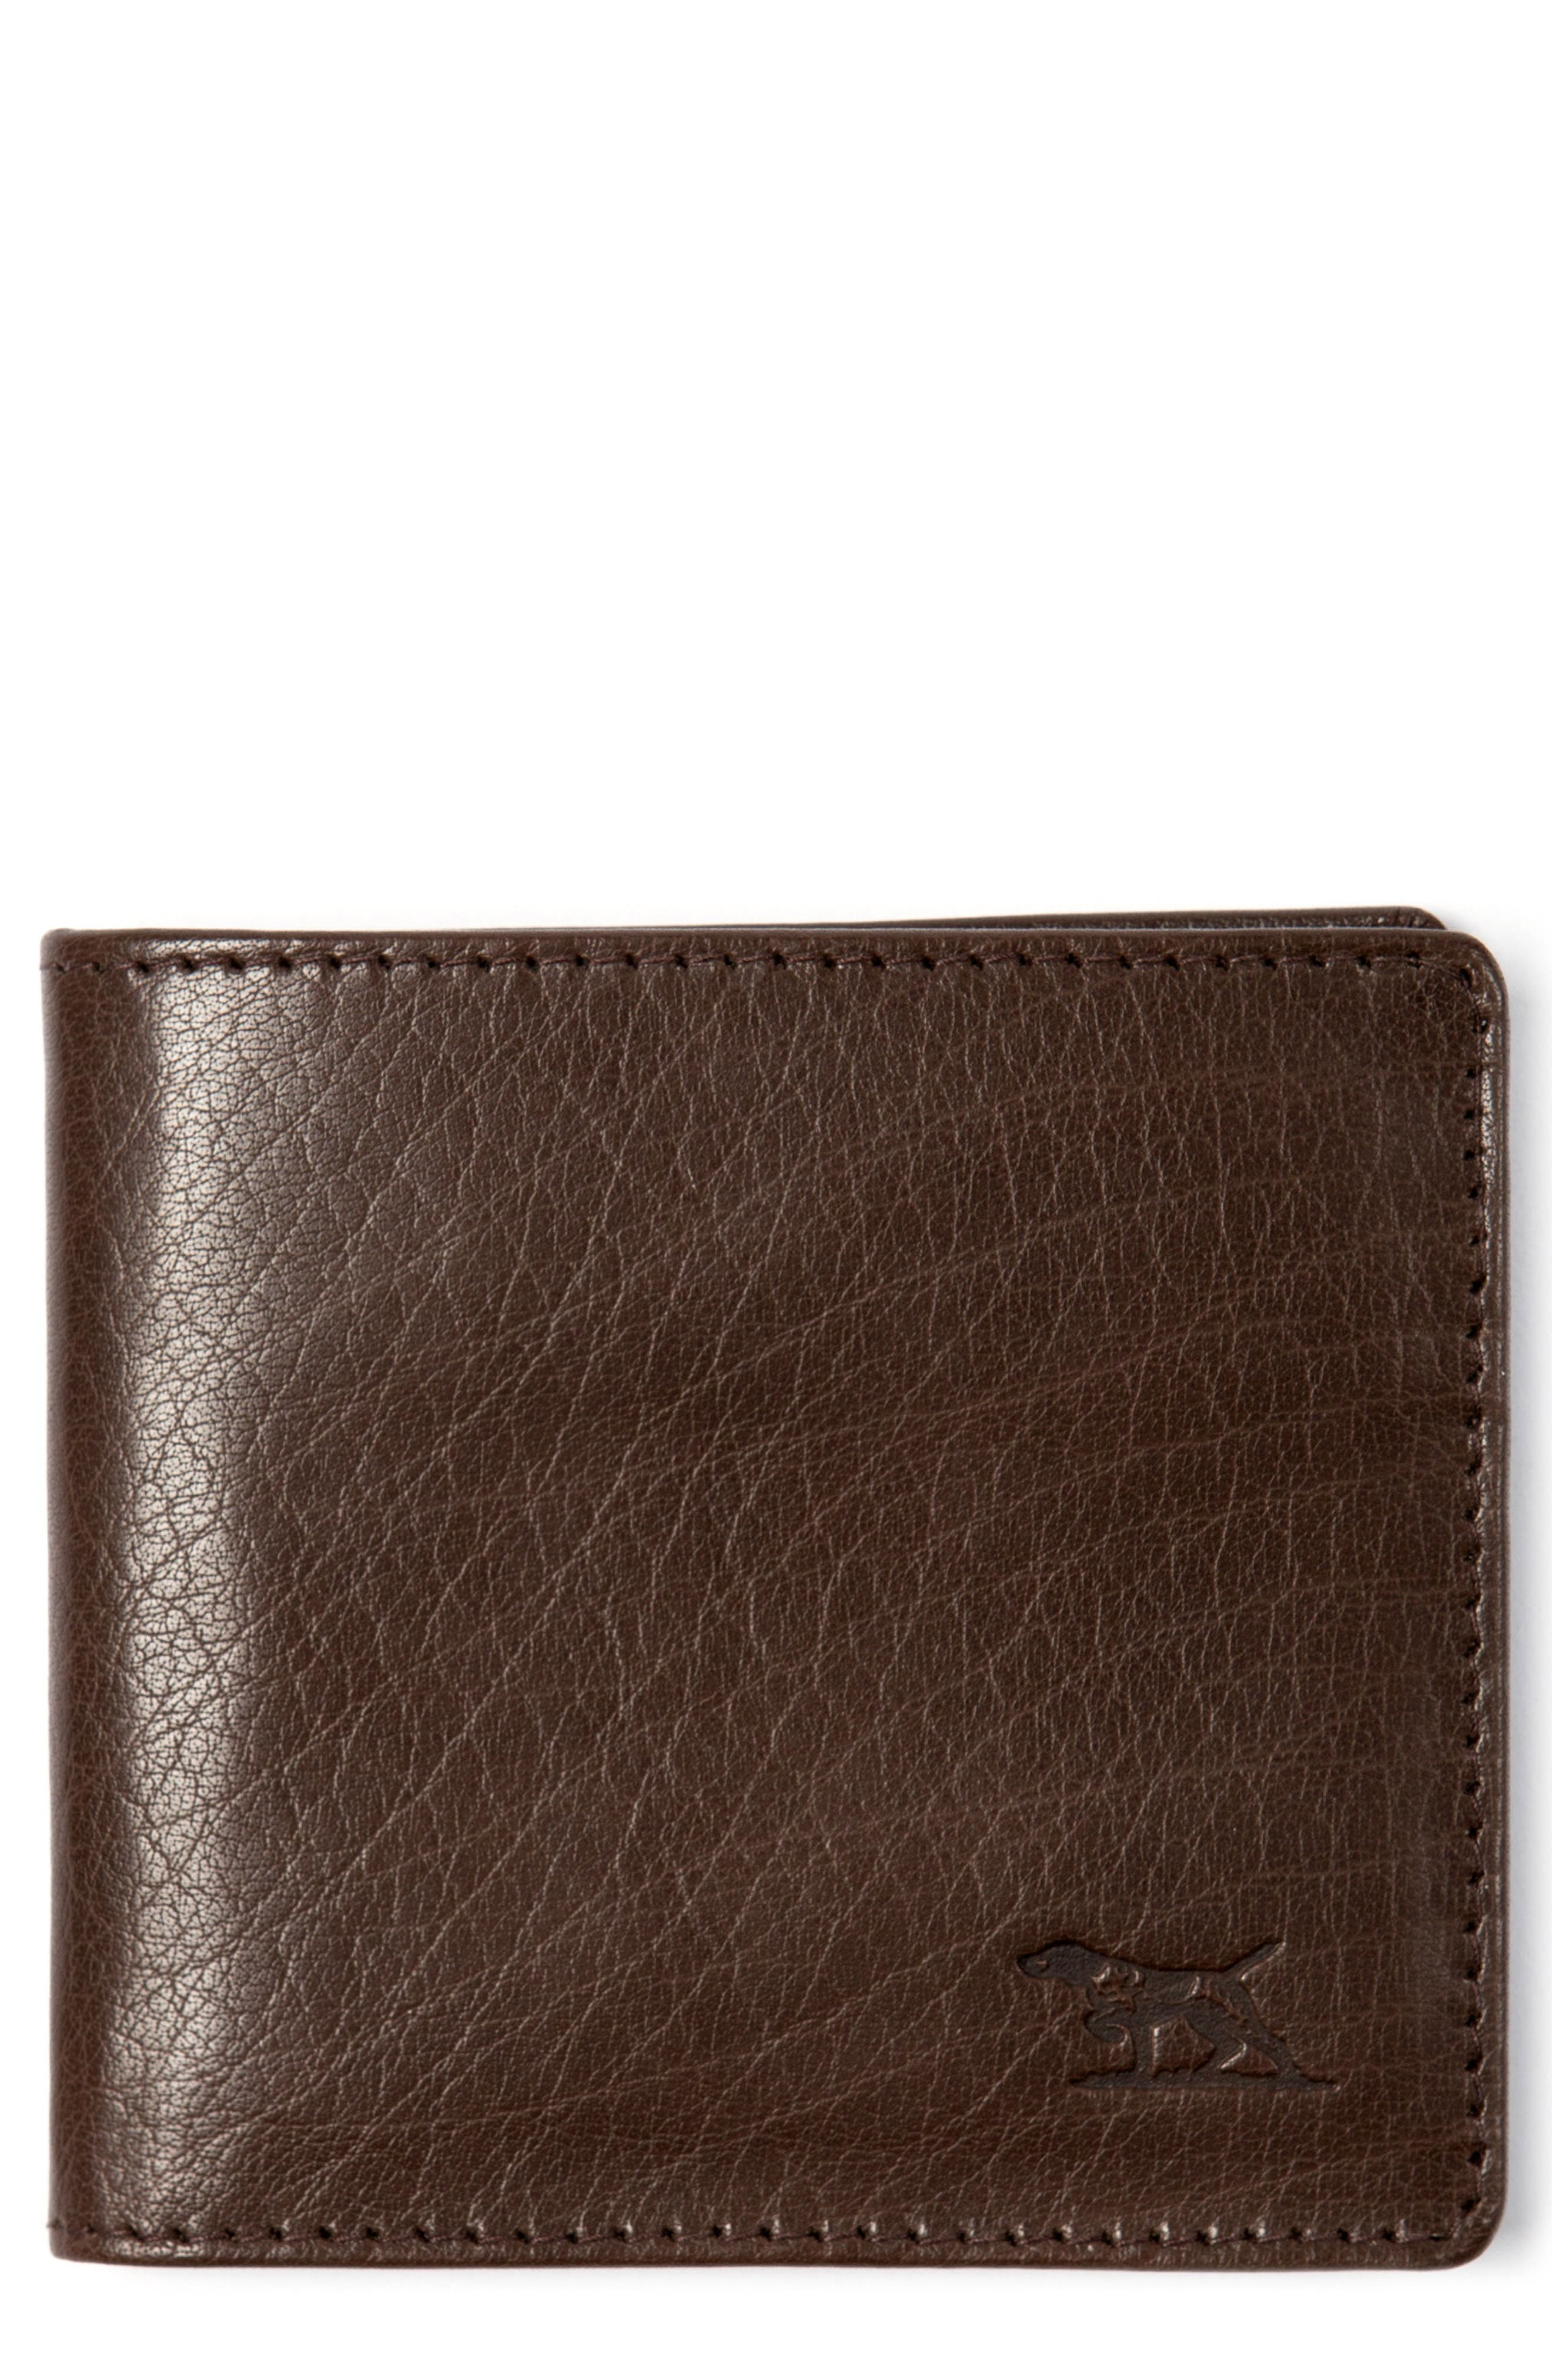 Marybank Wallet,                         Main,                         color, Mud